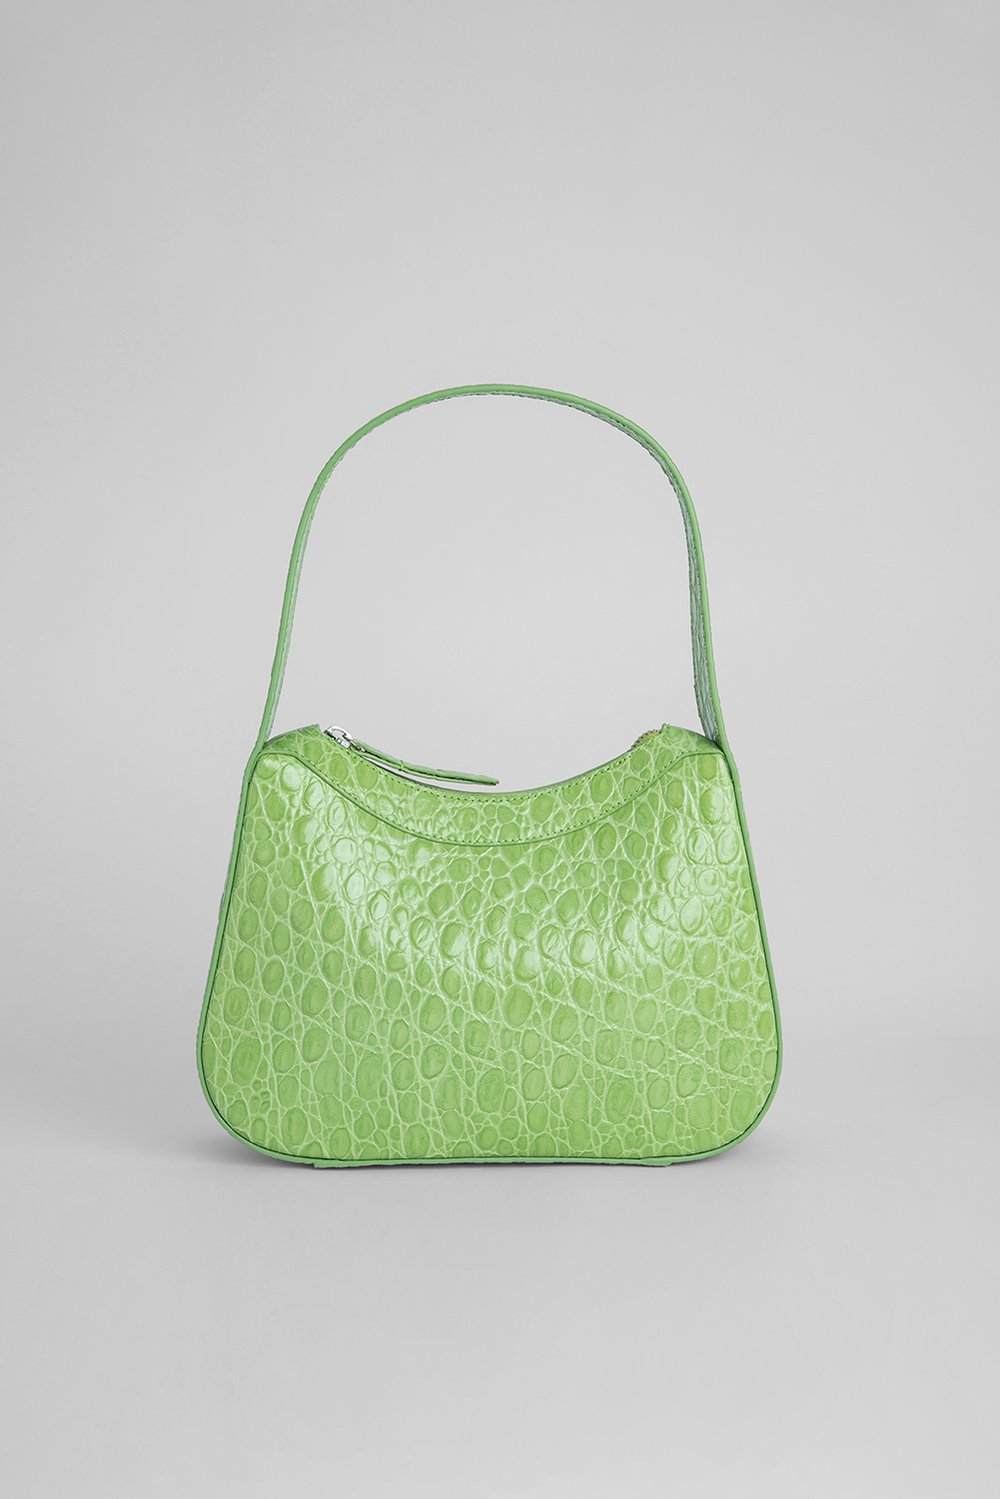 KIKI PISTACHIO CIRCULAR CROCO EMBOSSED LEATHER by BY FAR, available on byfar.com for $670 Elsa Hosk Bags Exact Product